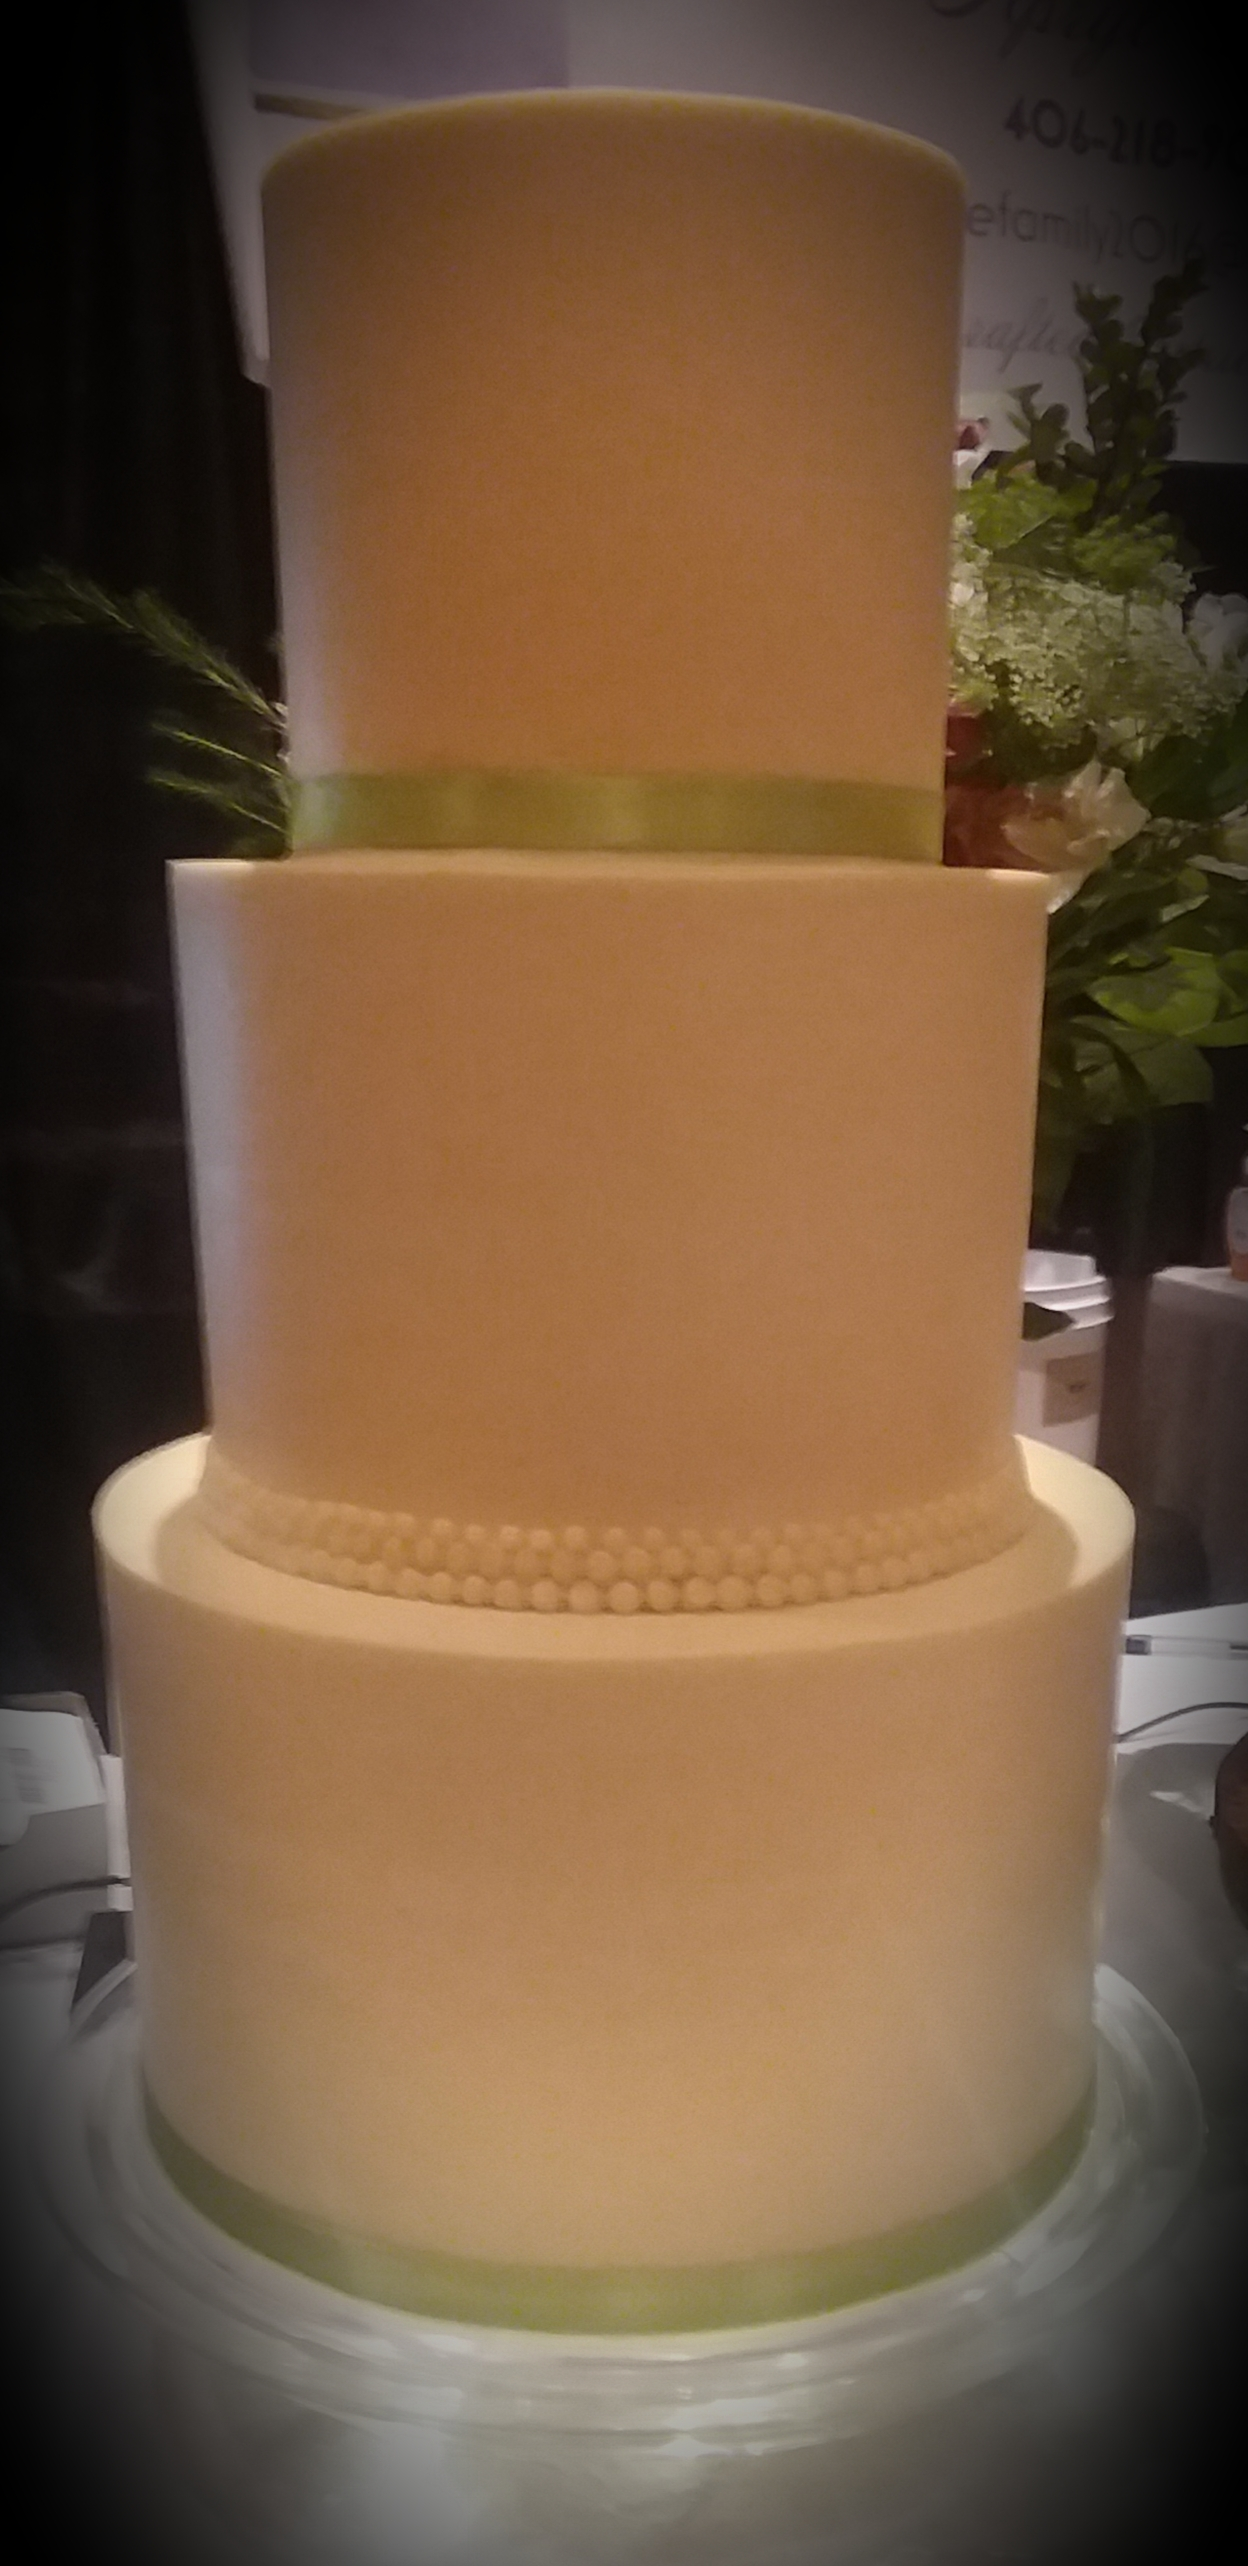 3-Tier Smooth Frost Wedding Cake with Beads and Ribbon